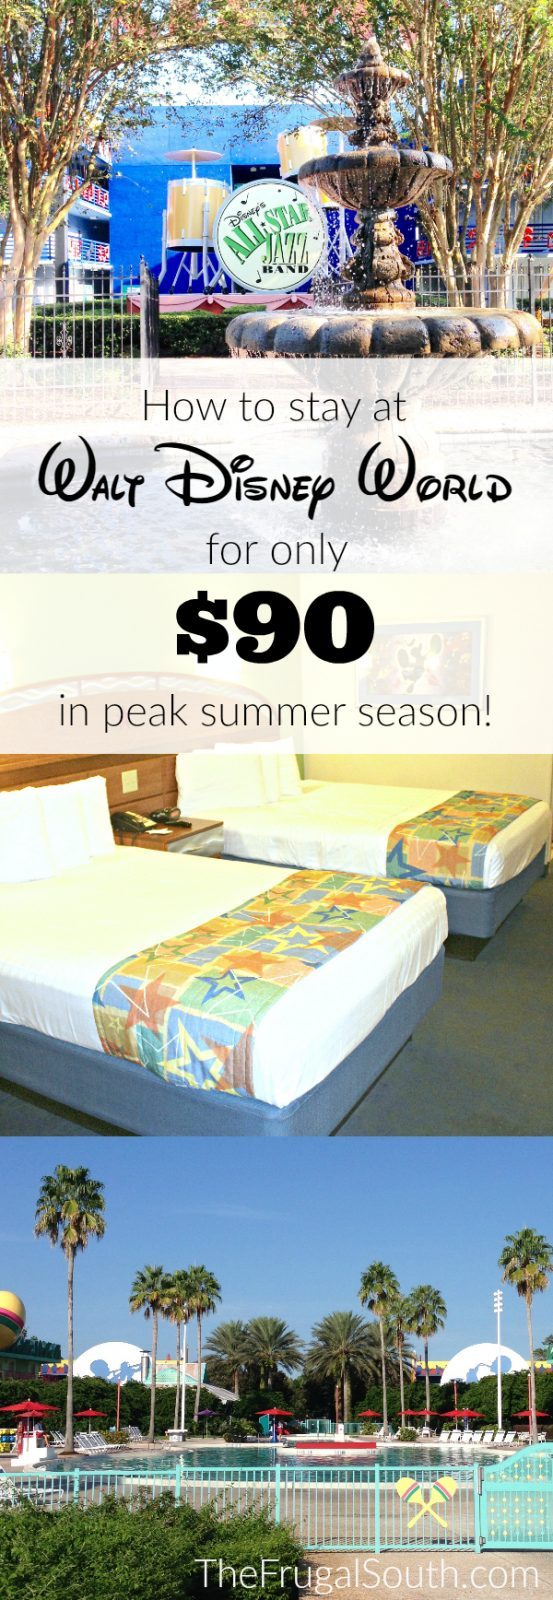 How to stay at a Disney World hotel for only $90 per night, even in peak summer season! Tips and tricks for getting discounted Disney World hotel rooms.